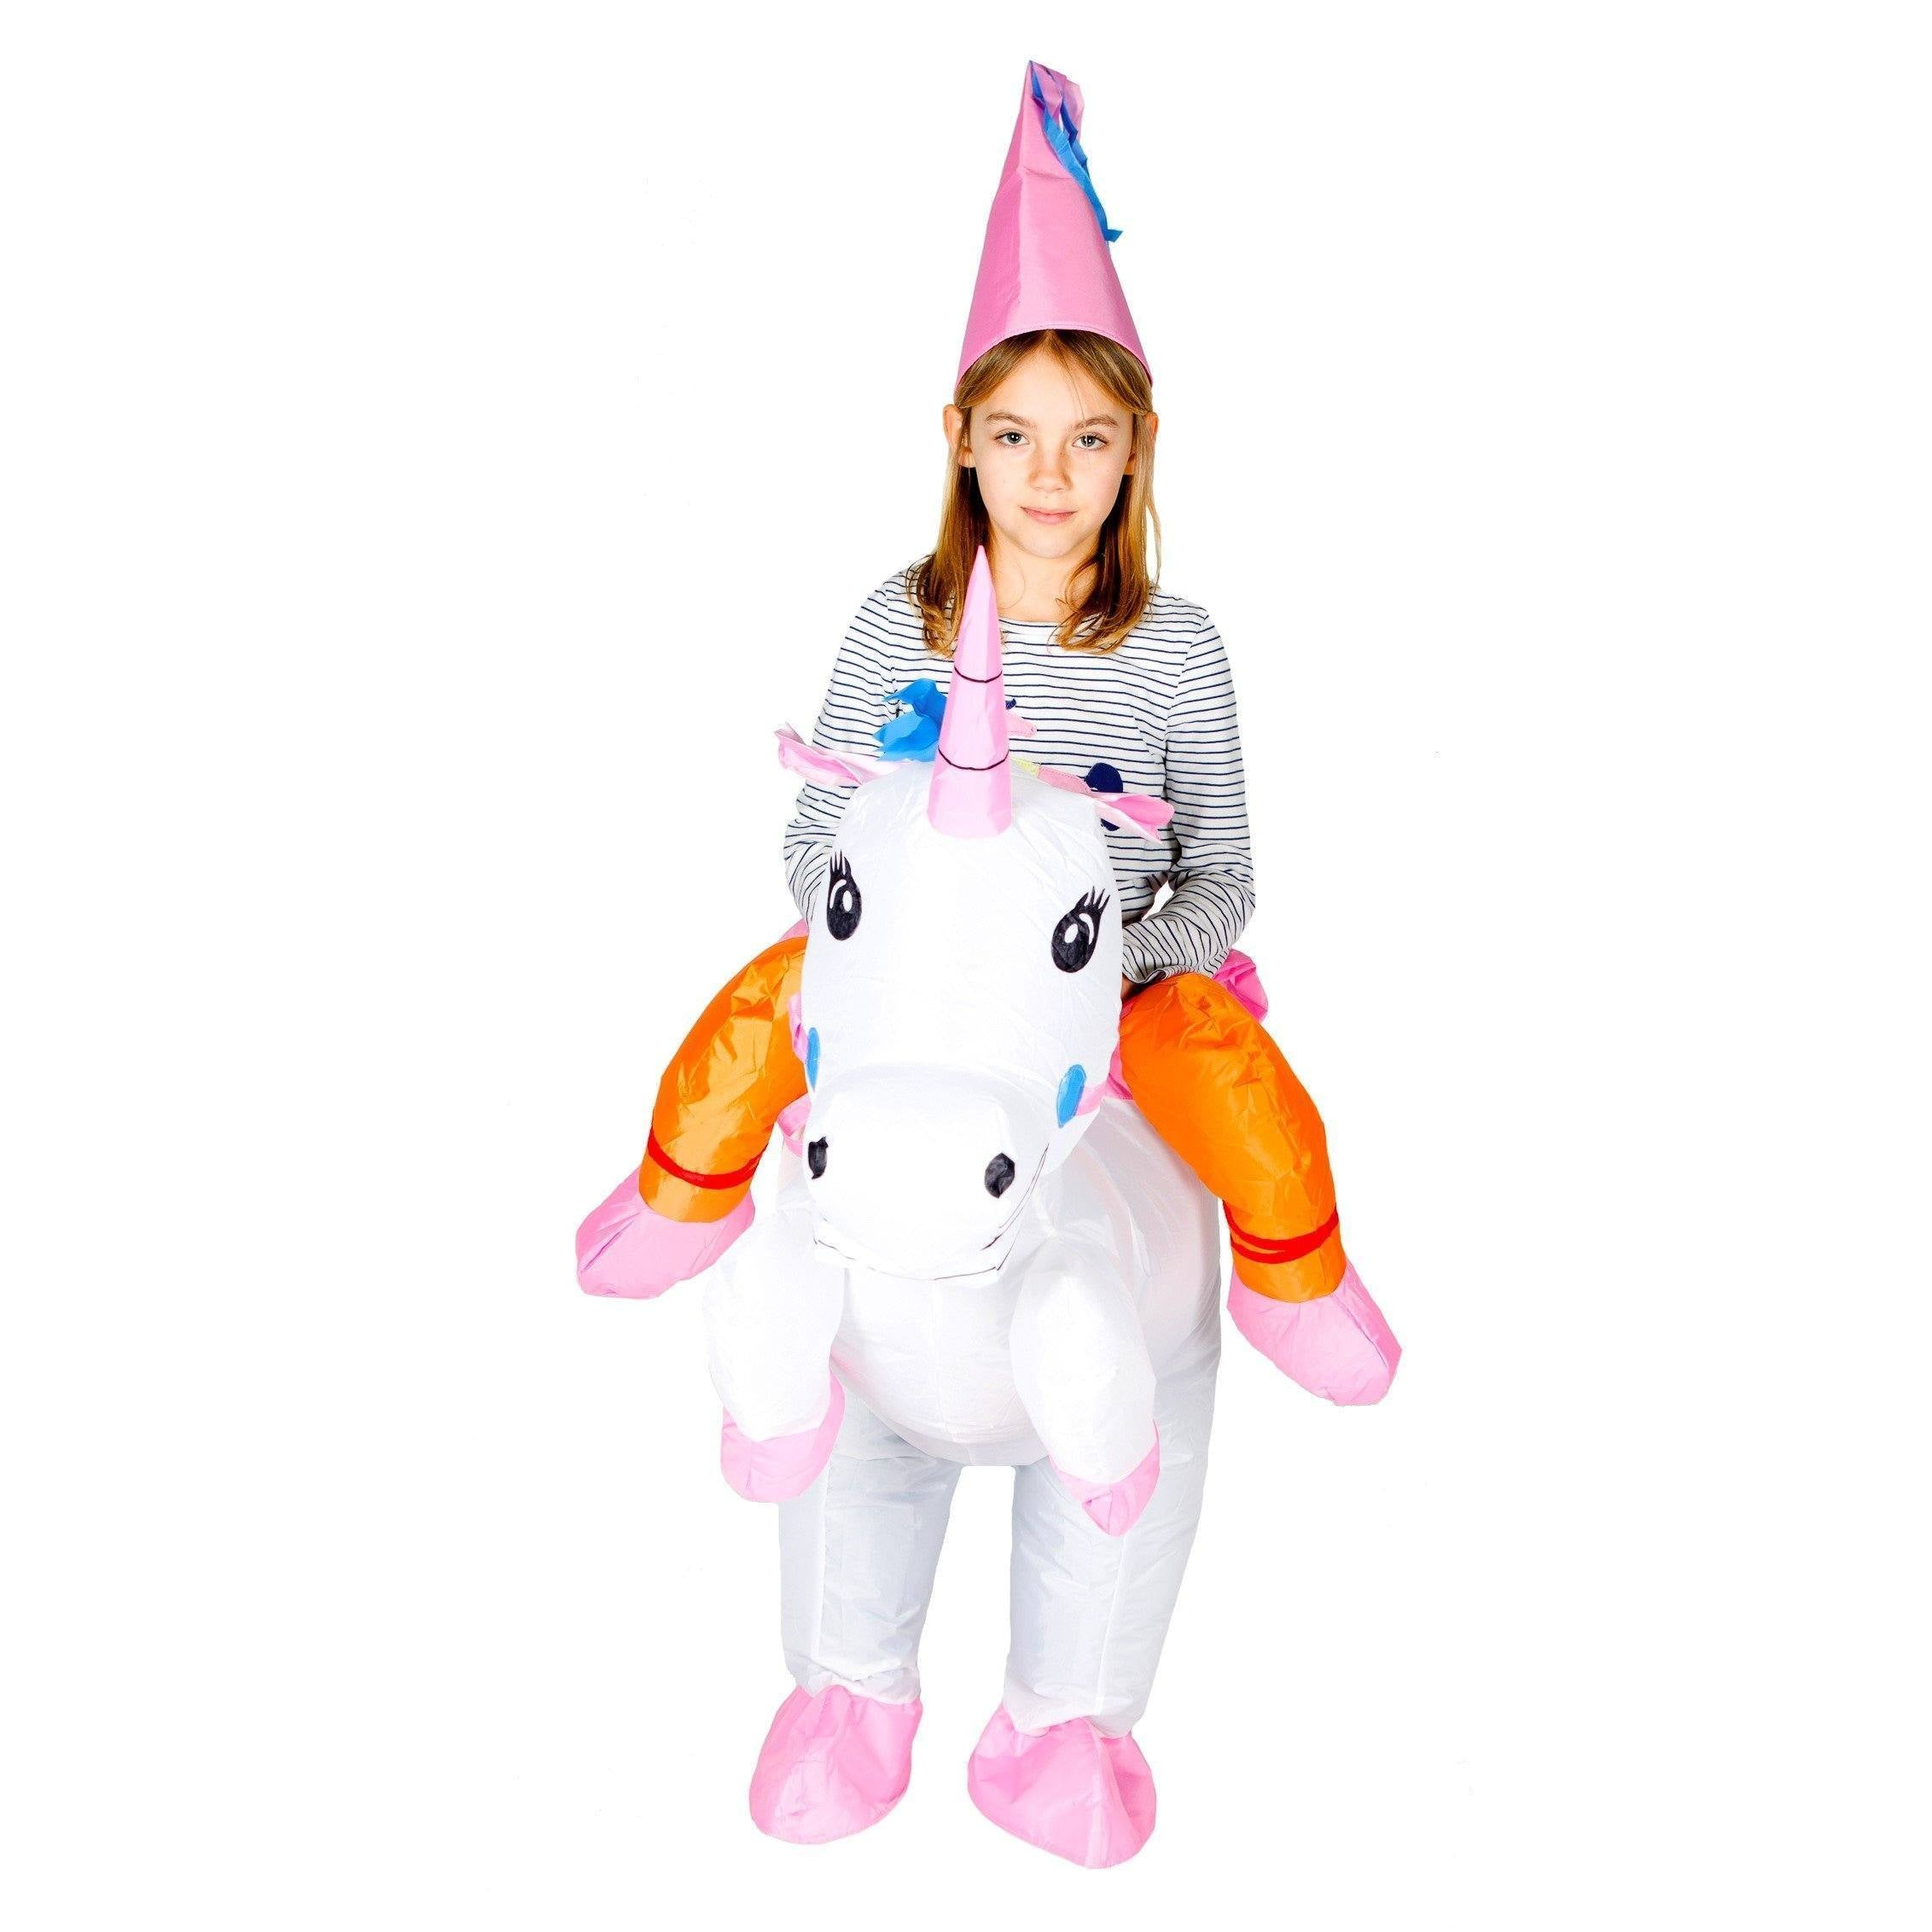 Fancy Dress - Kids Inflatable Unicorn Costume